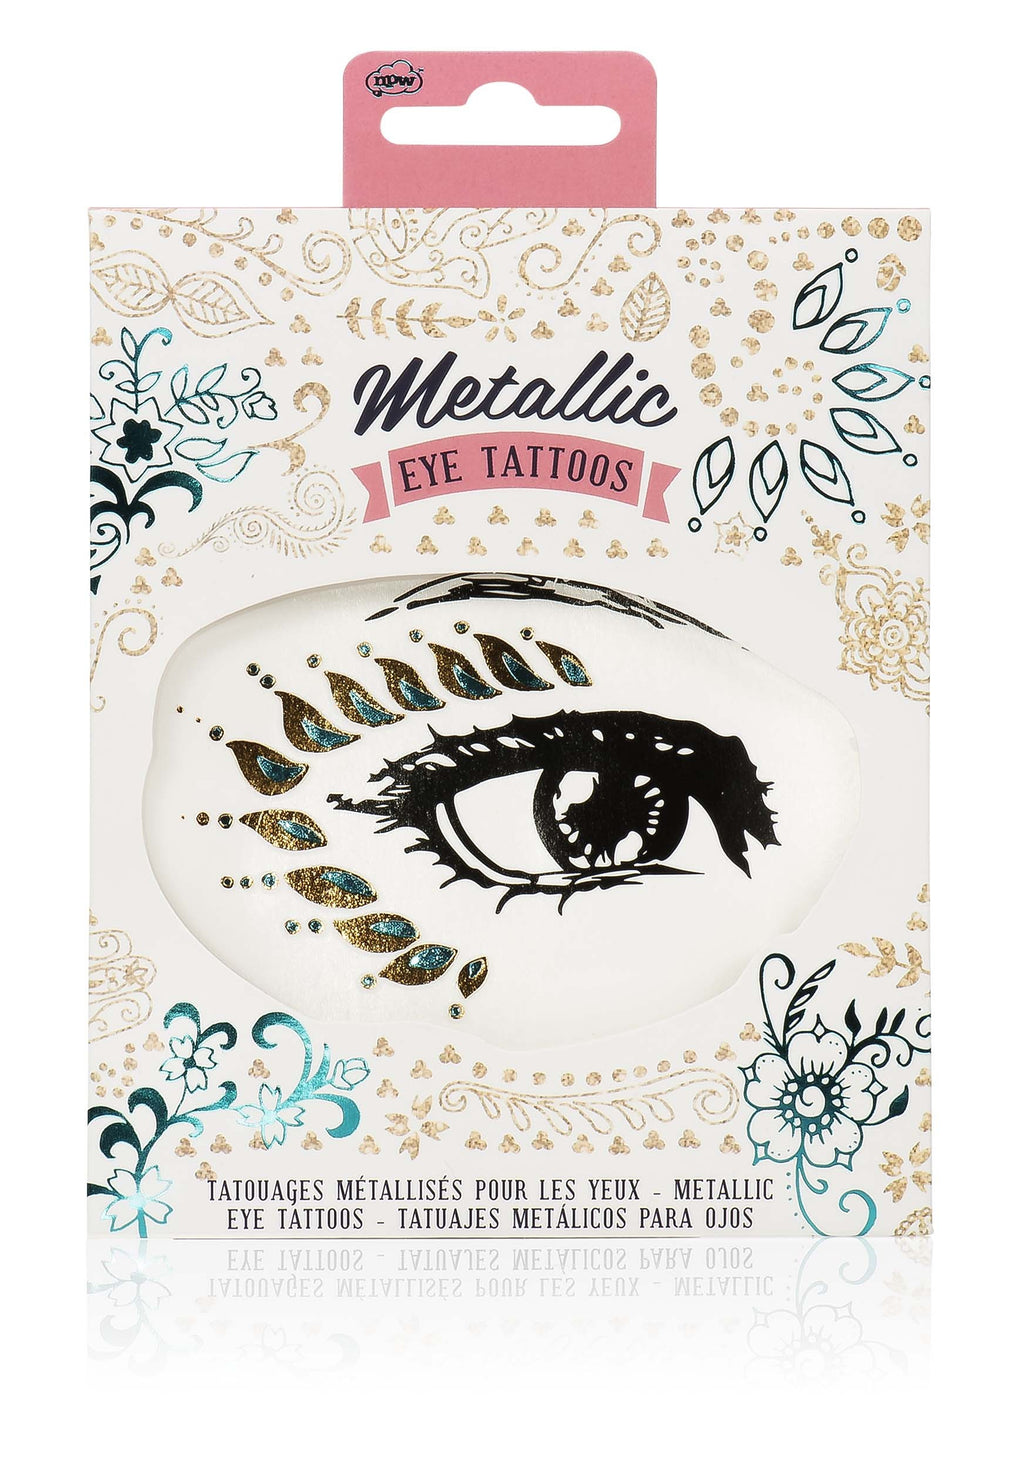 Metallic eye tattoos in colourful package